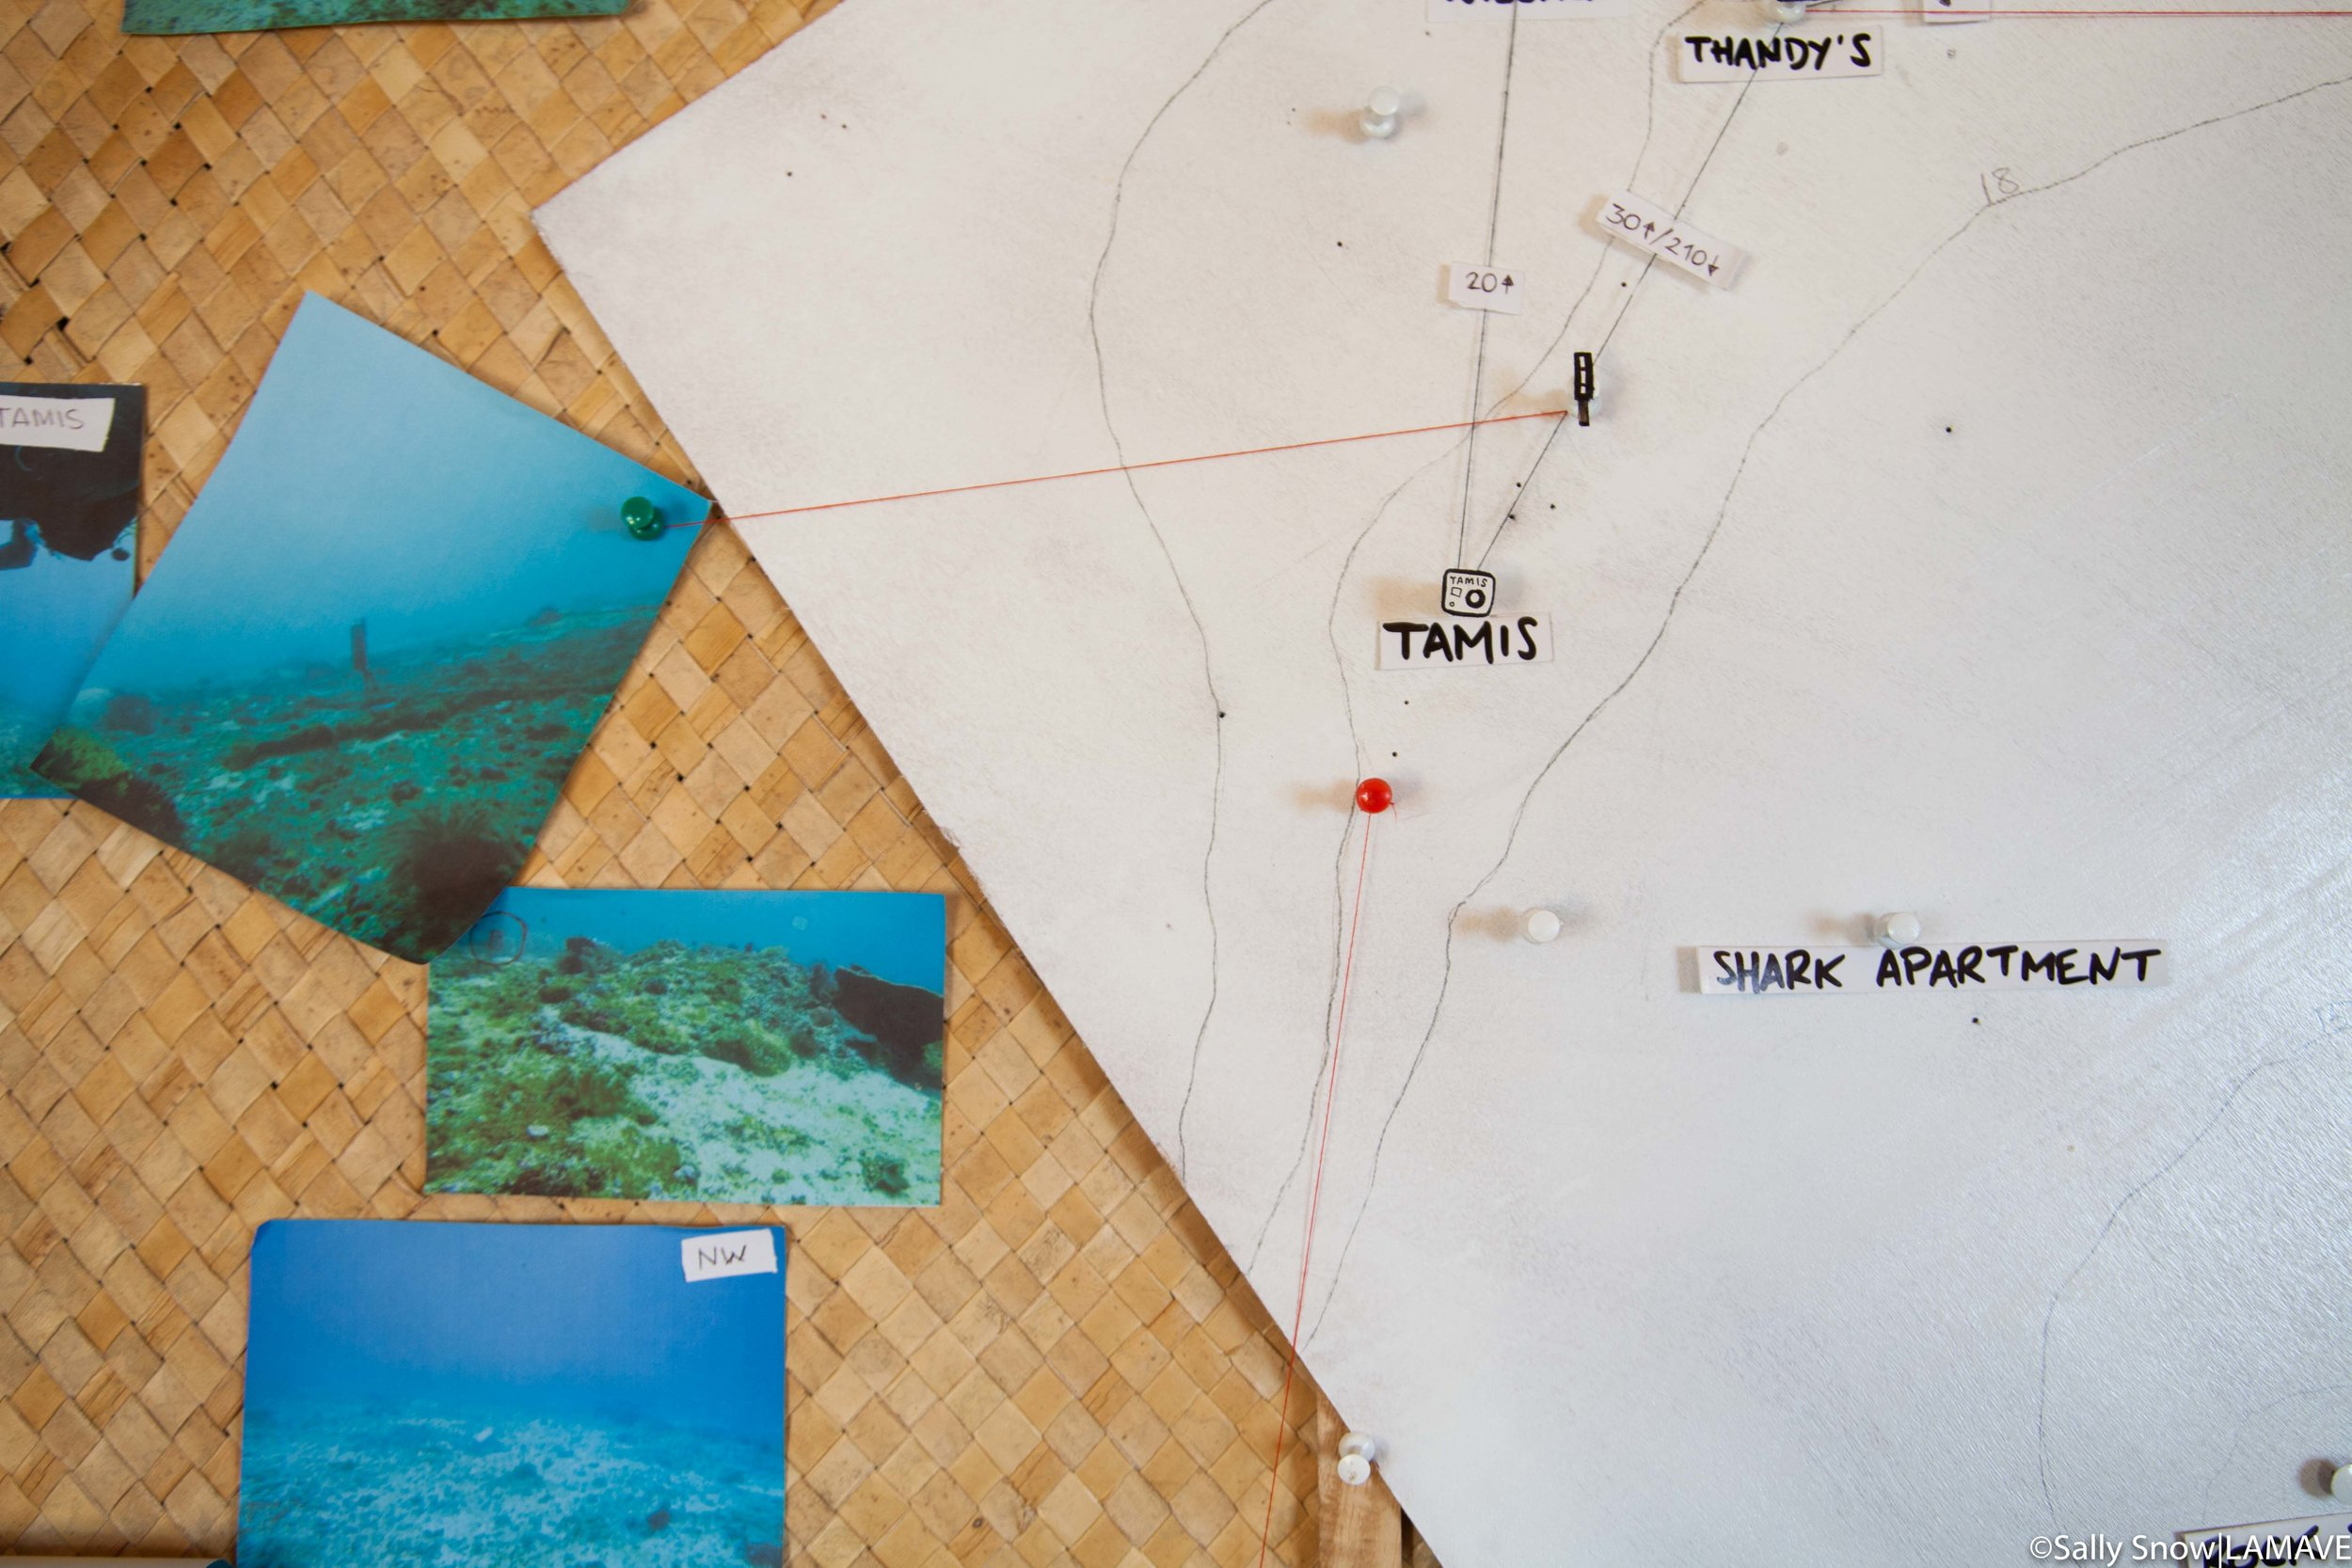 Inside the LAMAVE office kubo the team have set up a map of the bowl.